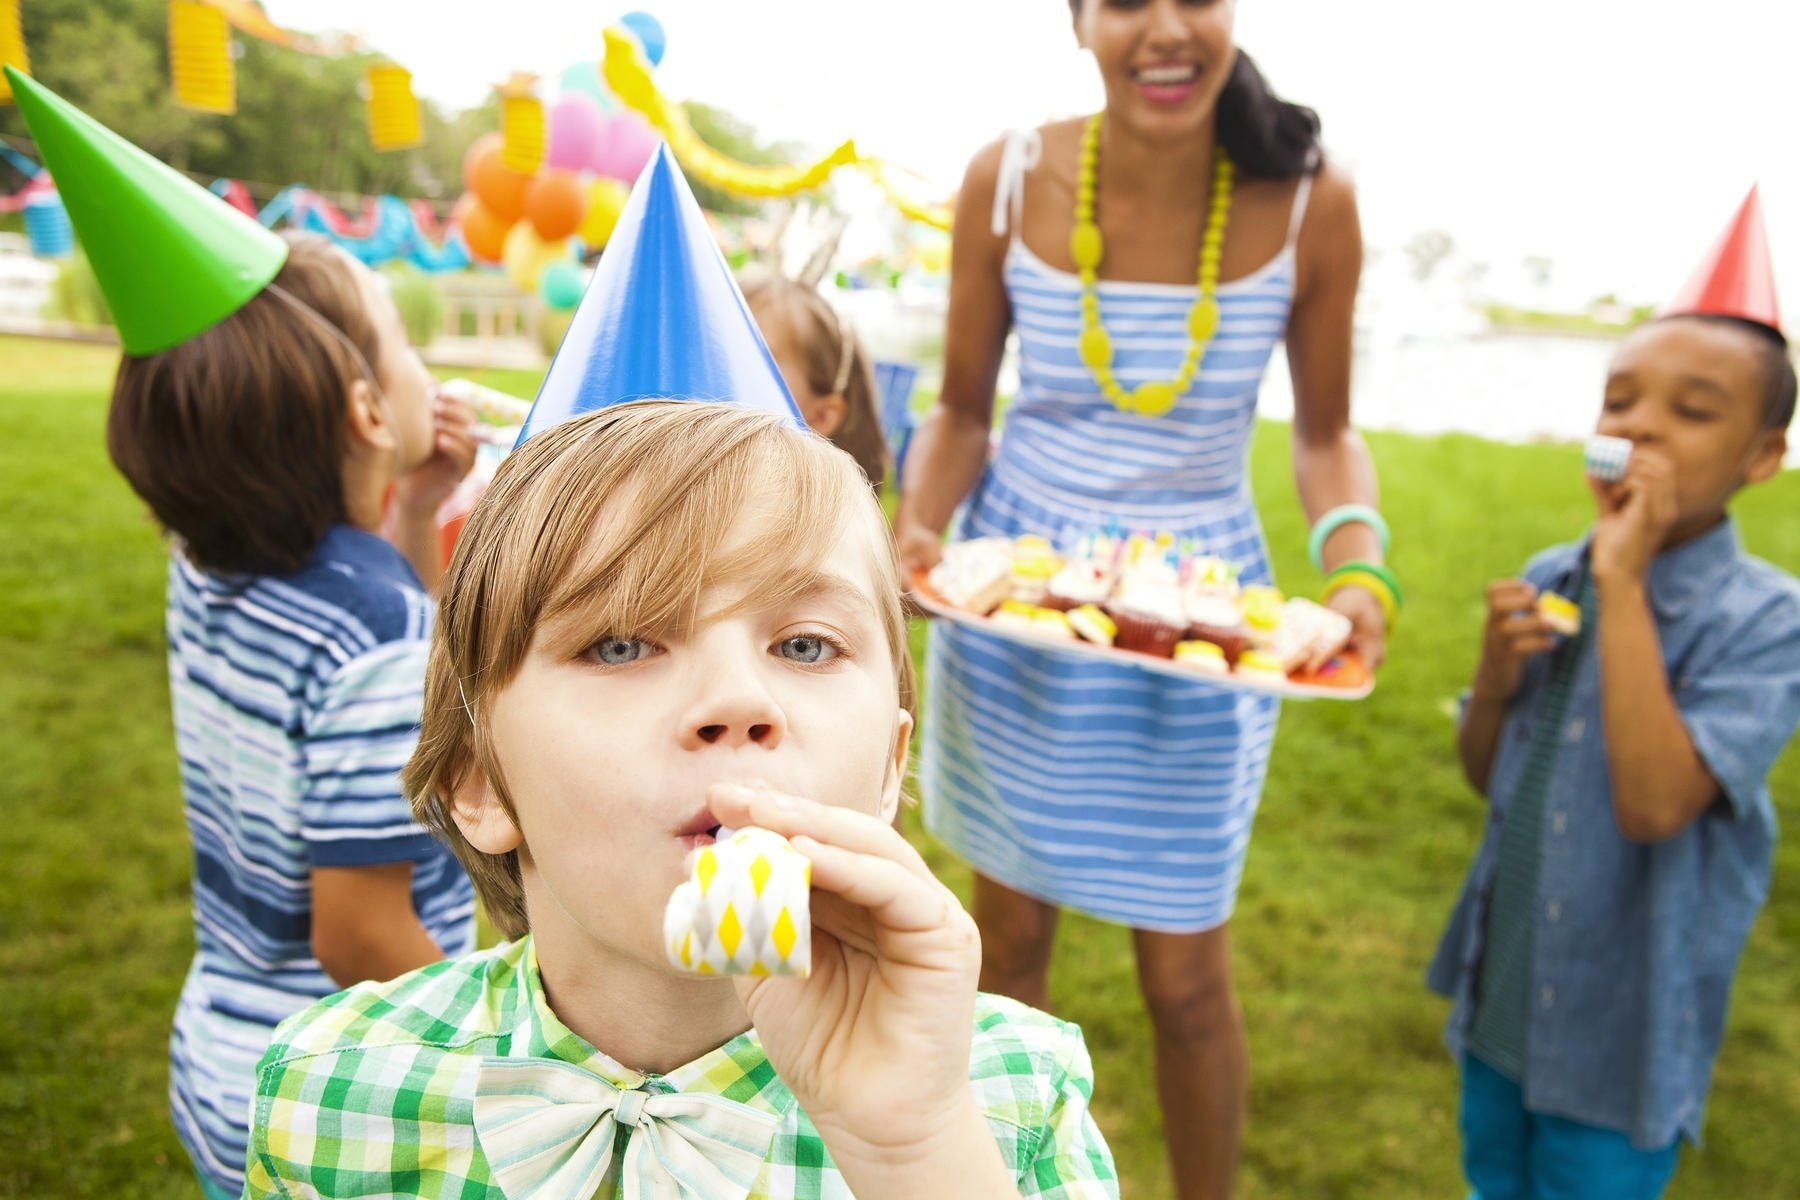 10 Fantastic Kids Birthday Party Entertainment Ideas 17 tips to throw a kids birthday party on a budget parents 2021